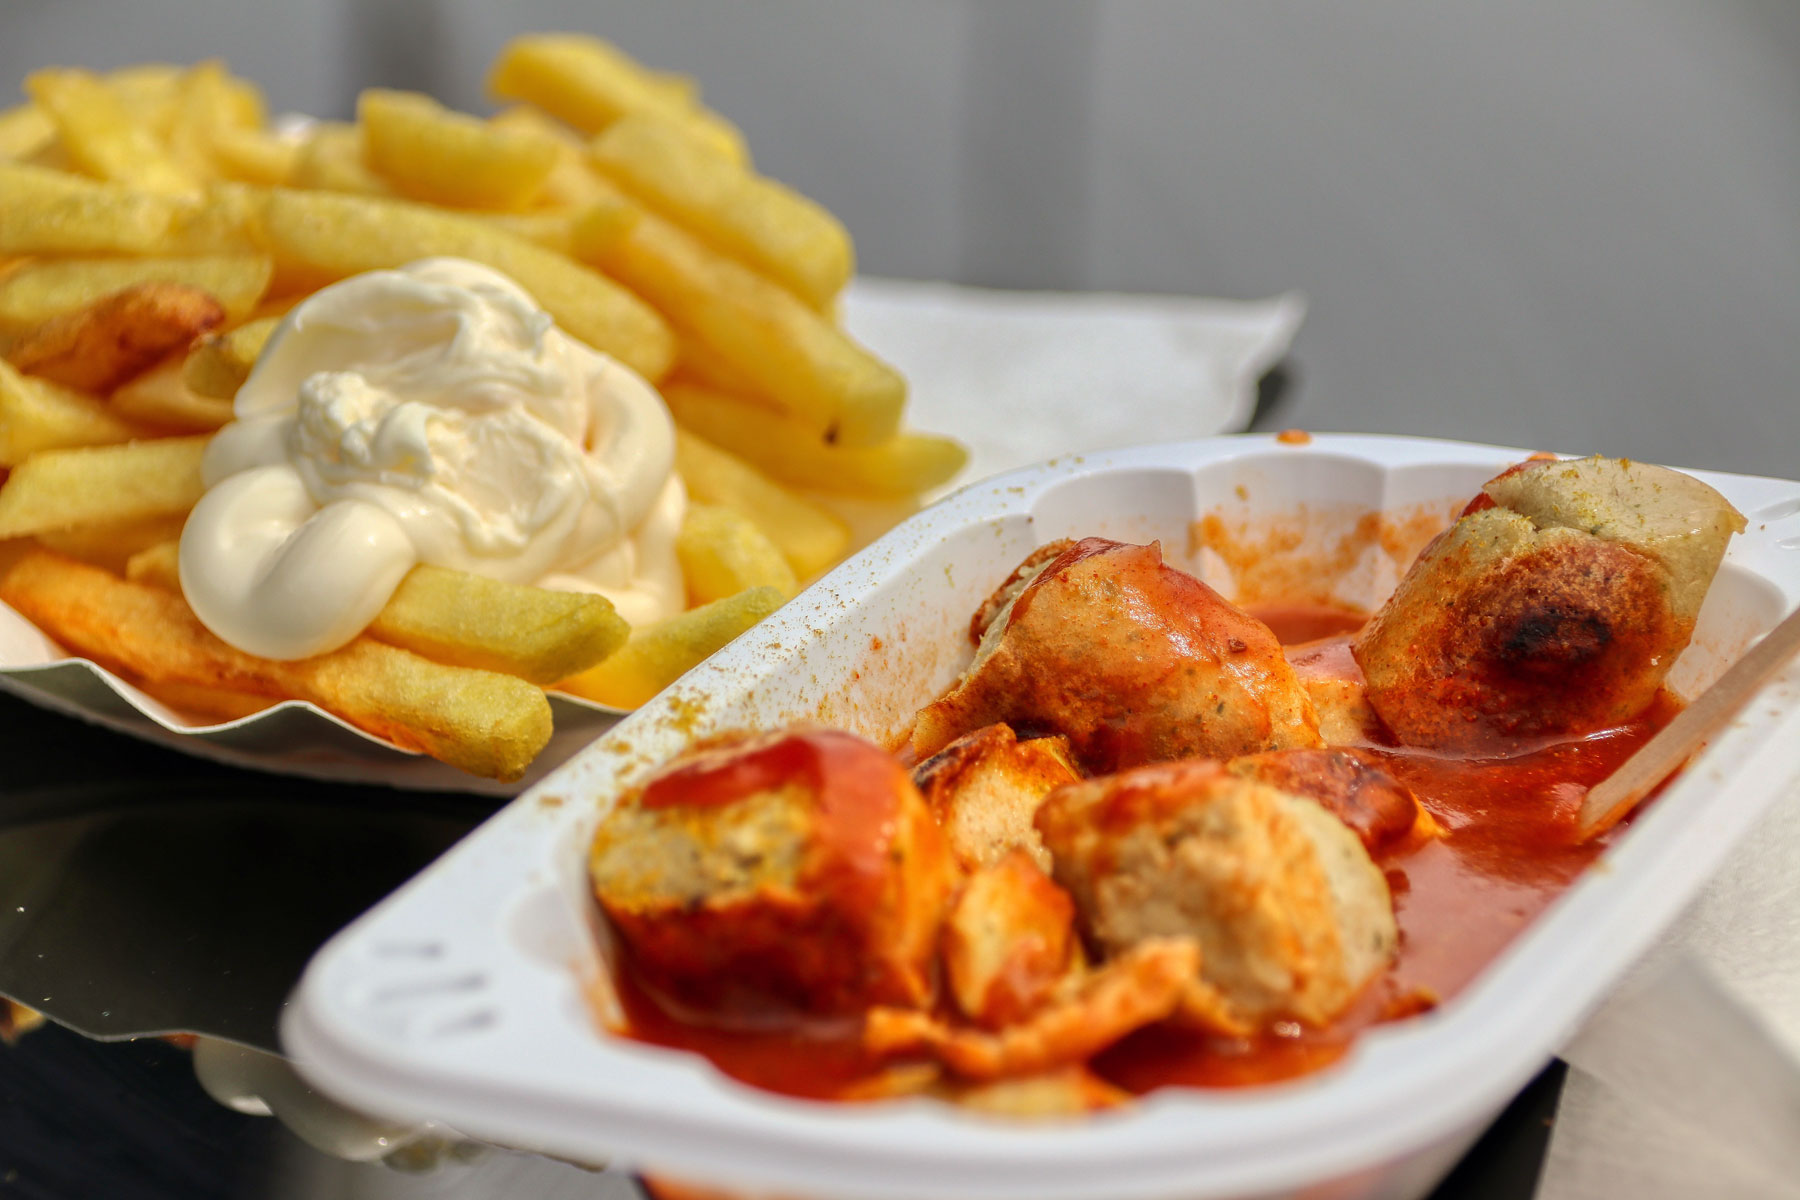 Currywurst with fries and mayonnaise